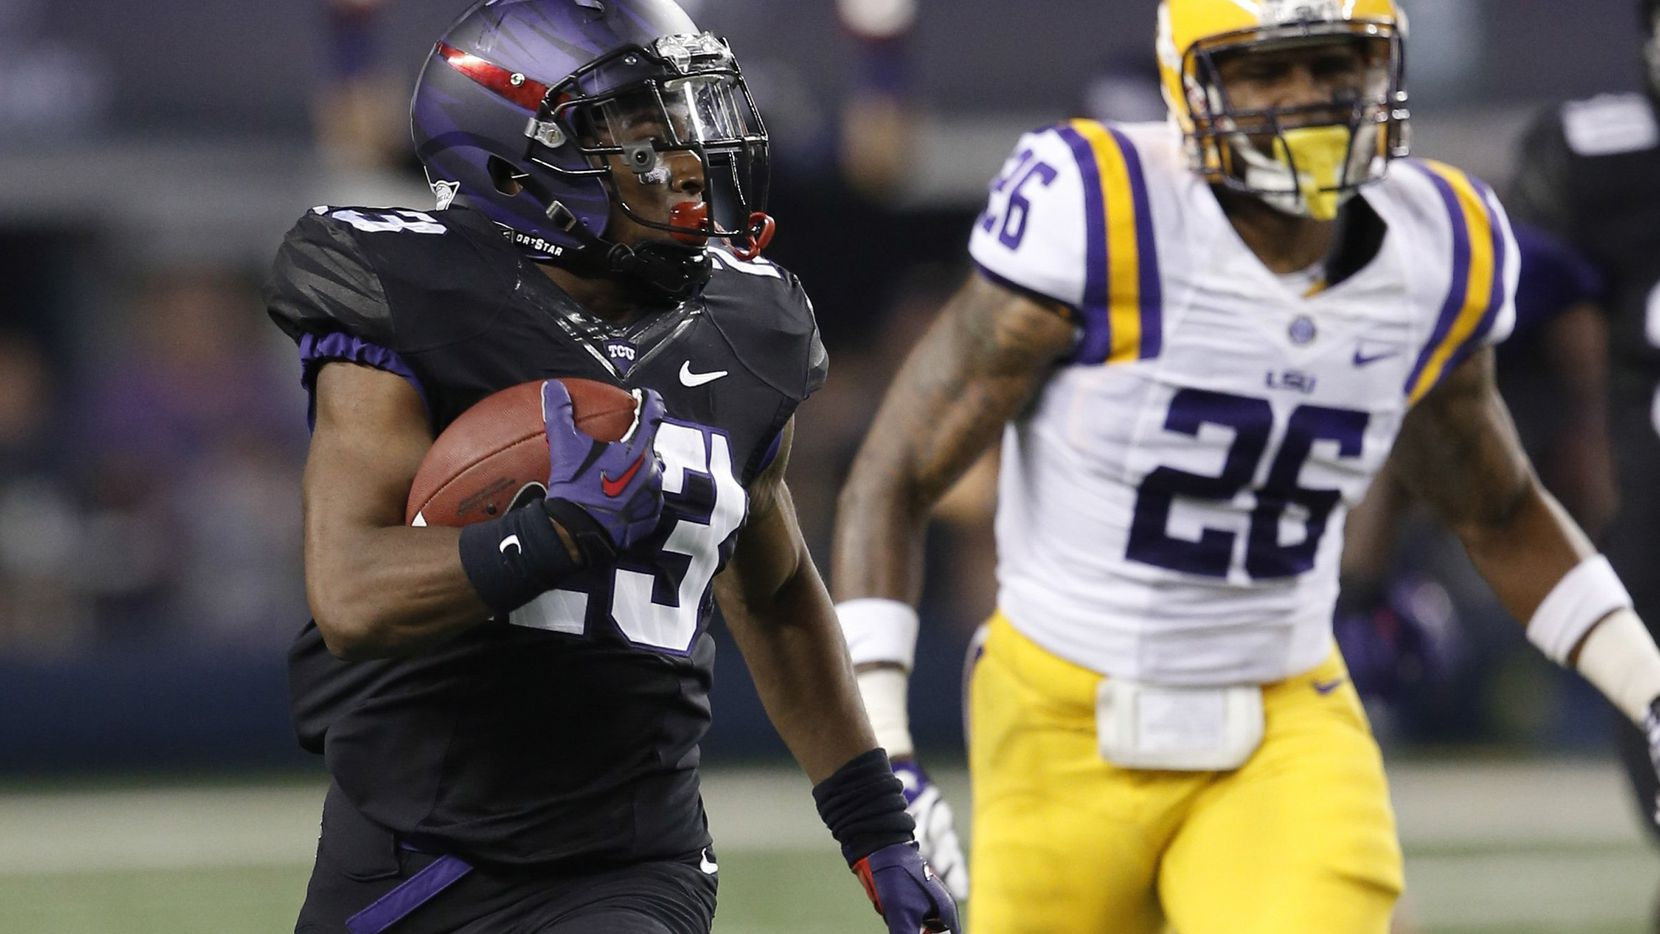 Prediction: TCU defeats SMU in Battle for Iron Skillet